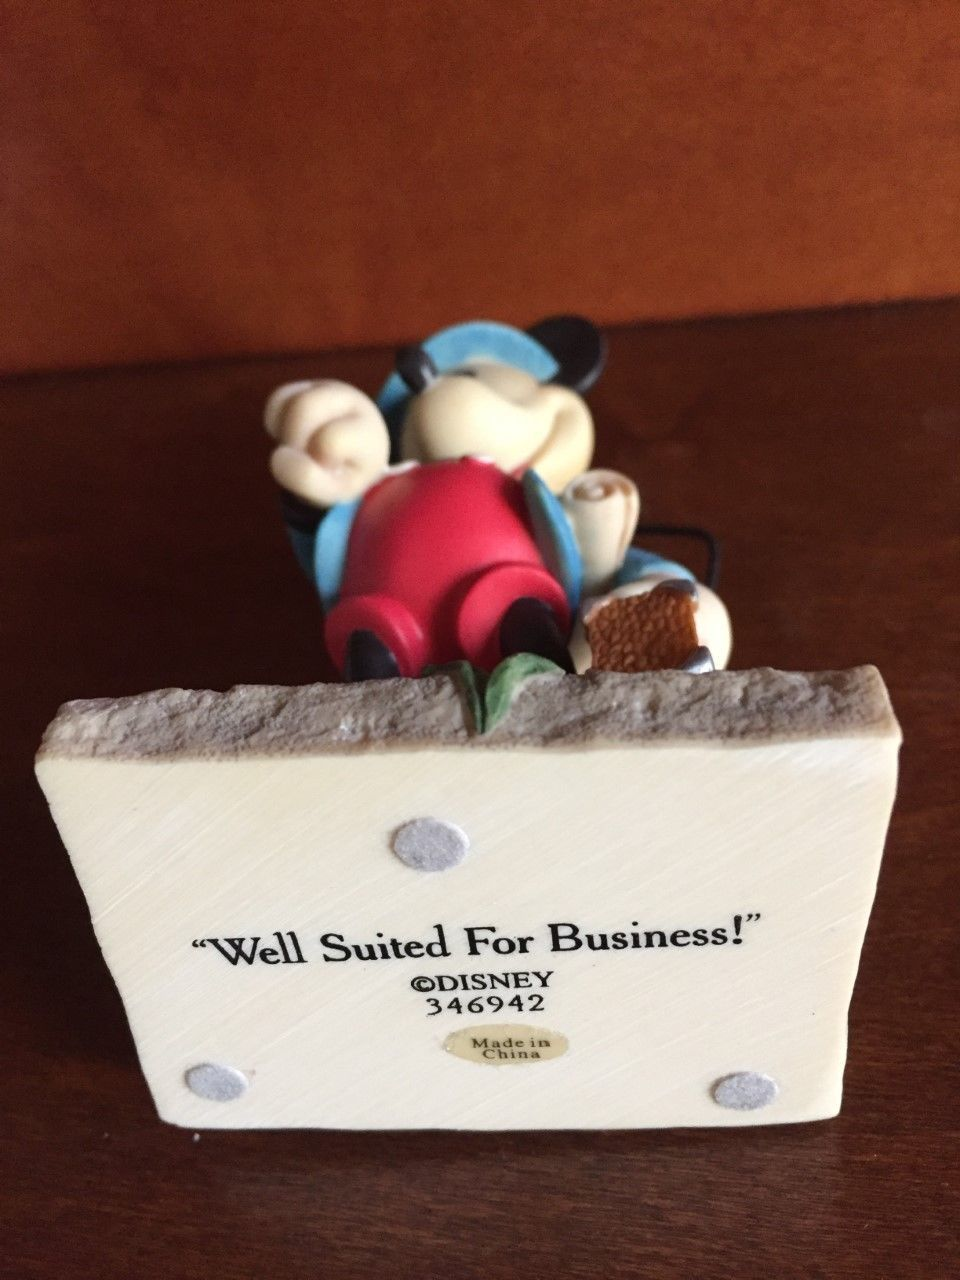 Mickey Mouse Business Sales Man Rep Disney Enesco Figurine Statue Collectible